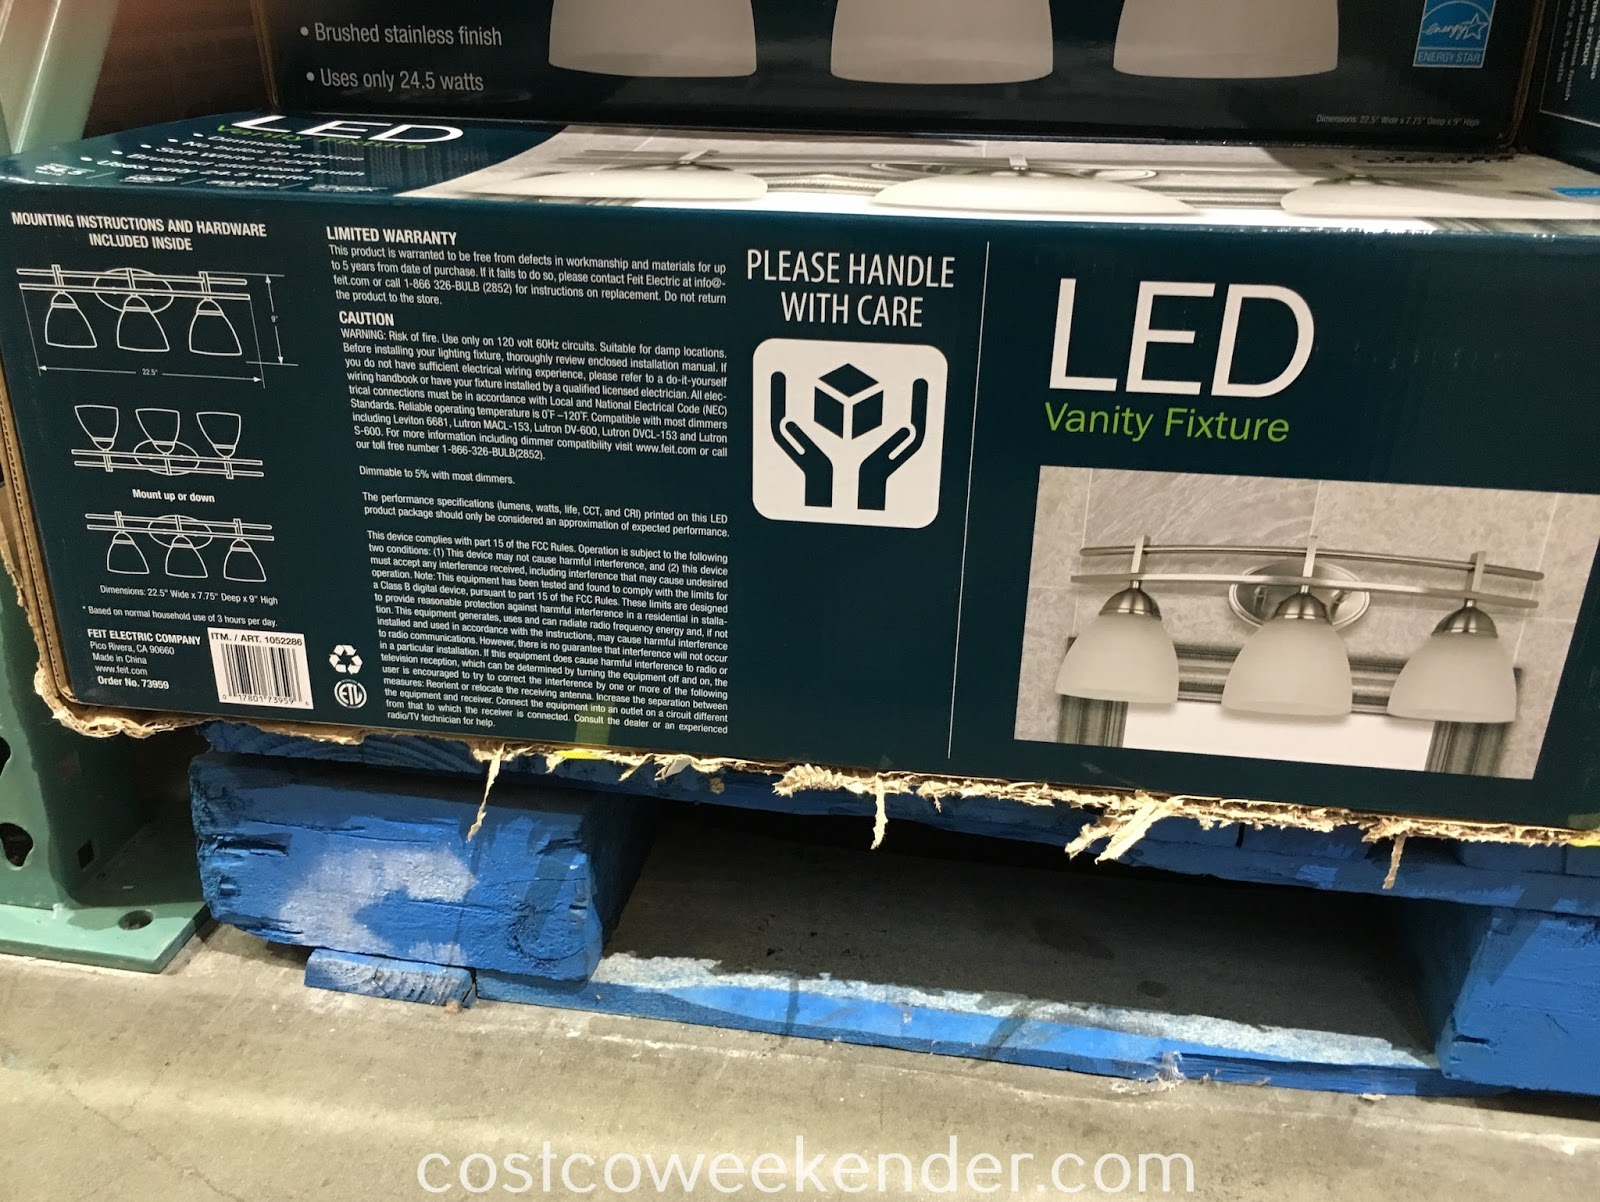 Costco 1052286 - Feit Electric LED Vanity Fixture - great for any home's bathroom